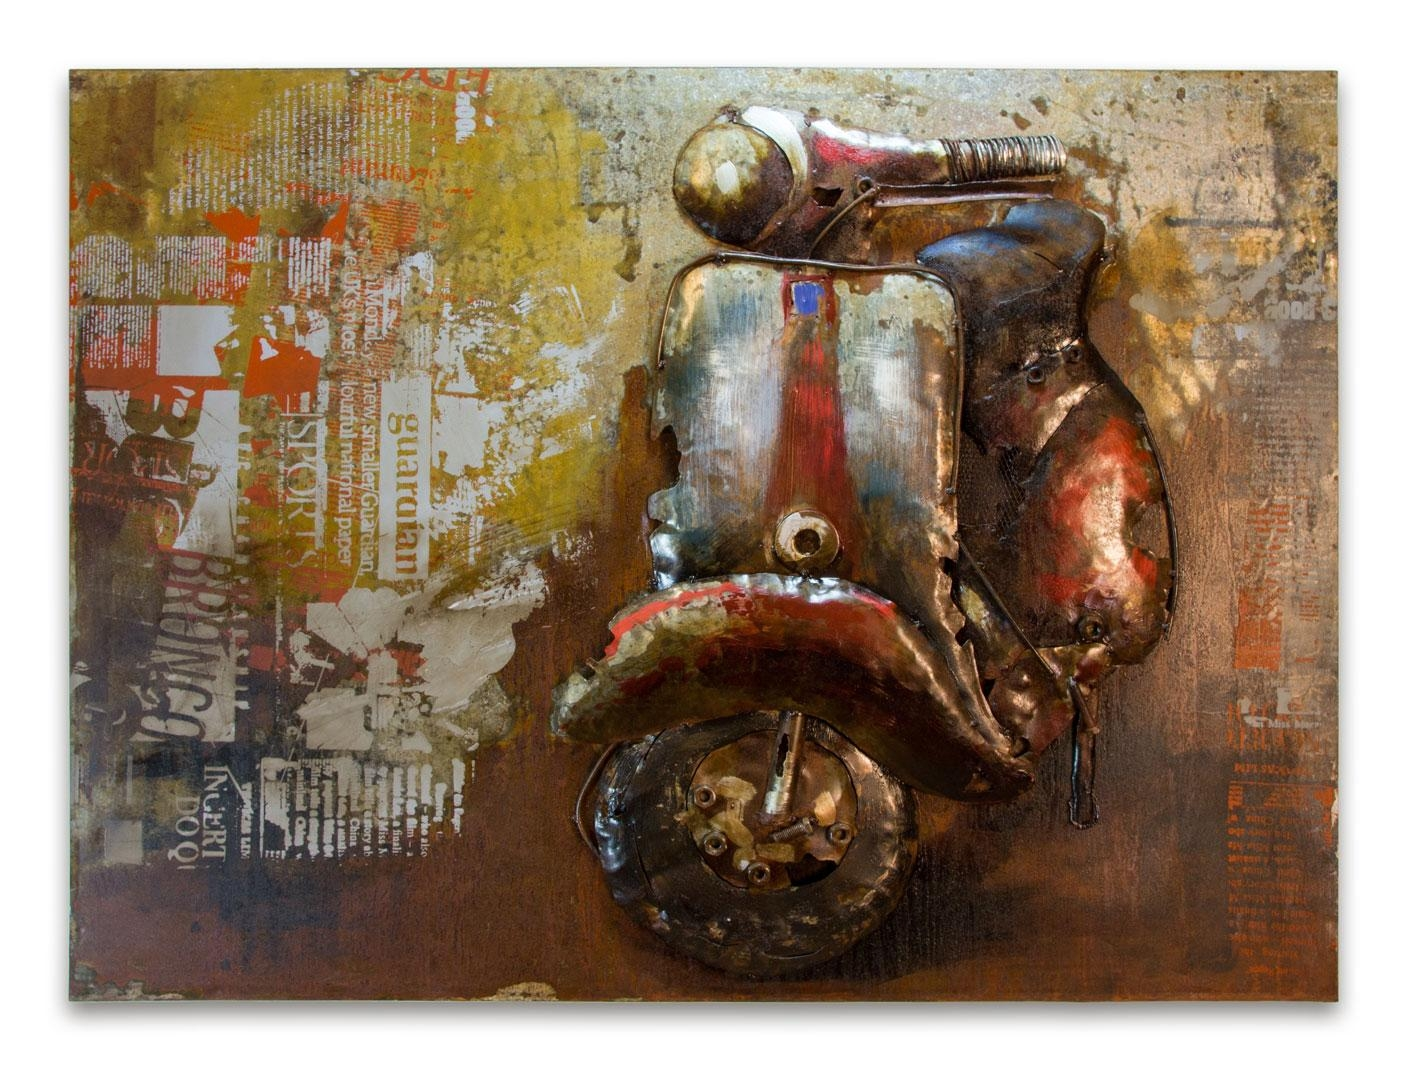 Wall Art Decor: Scooter Crafted Italian Metal Wall Art Handmade Throughout Vintage Italian Wall Art (View 8 of 20)